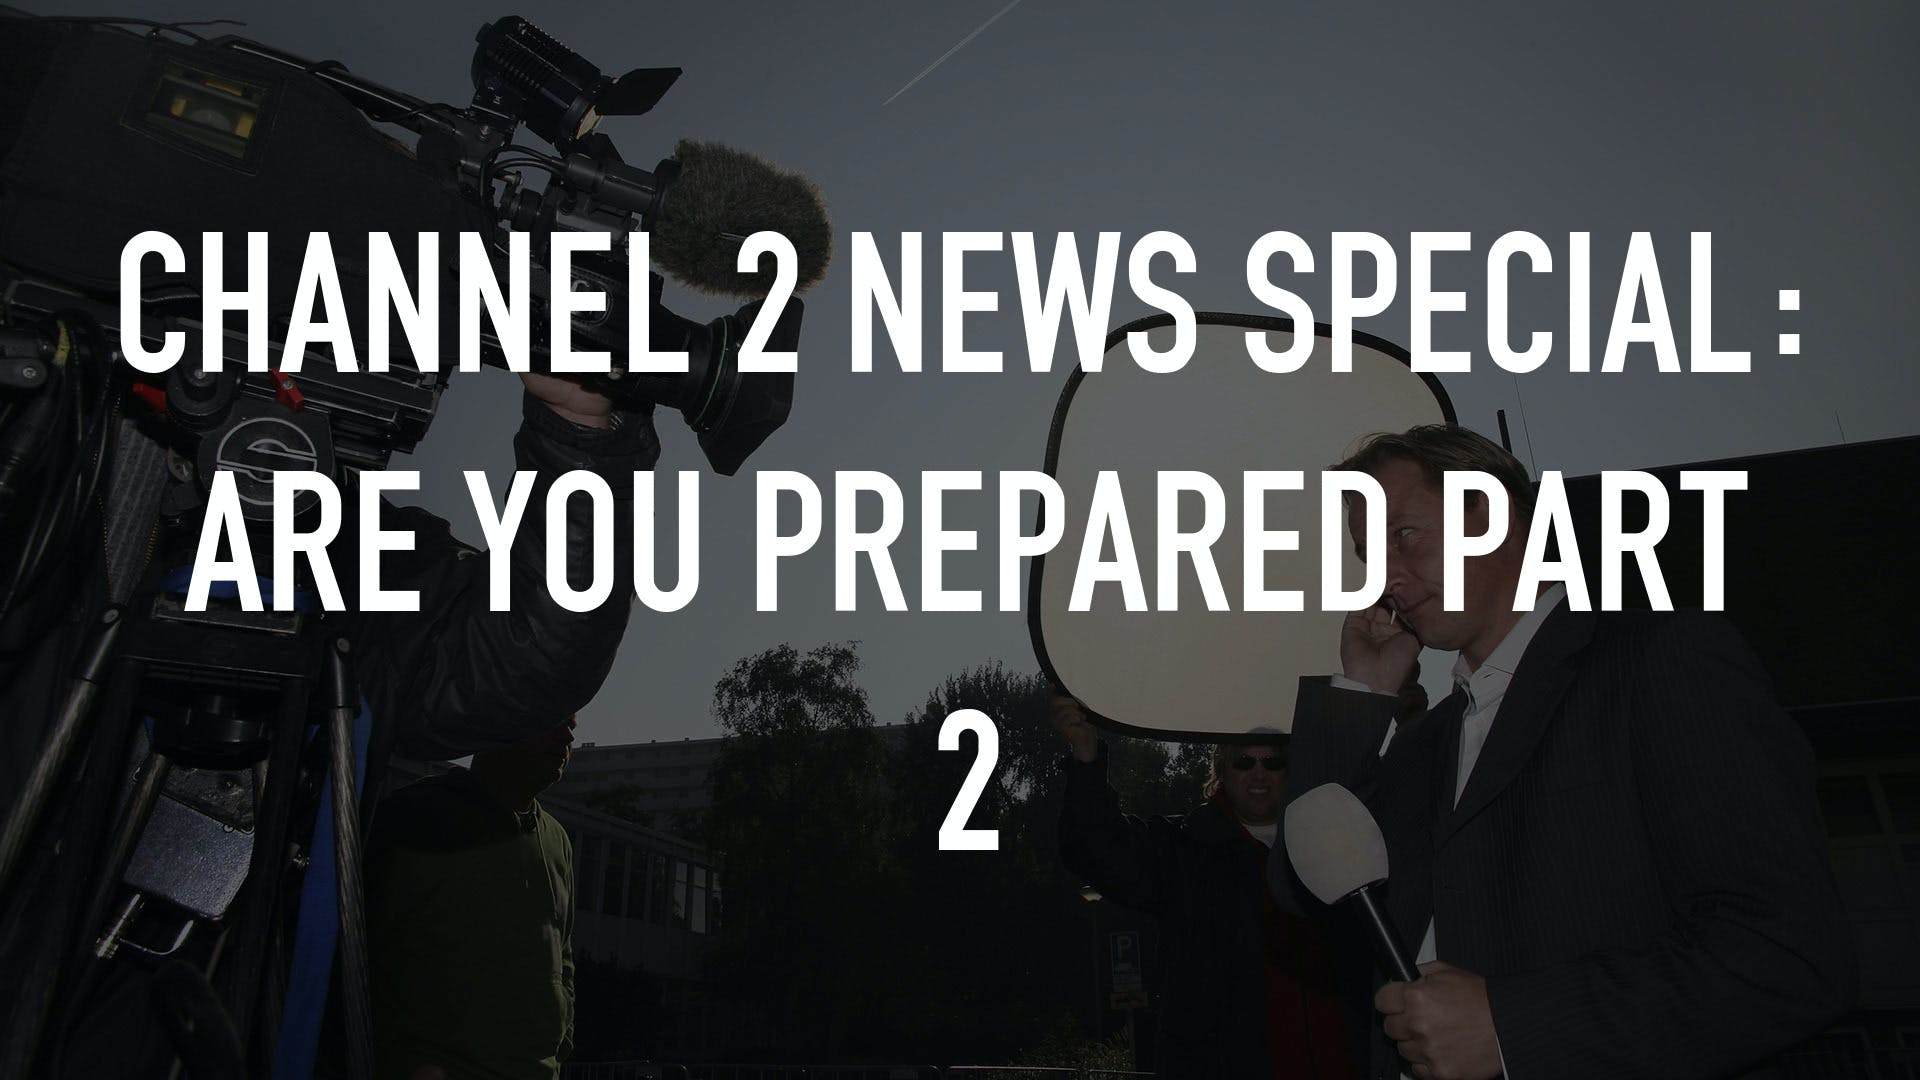 Watch Channel 2 News Special: Are You Prepared Part 2